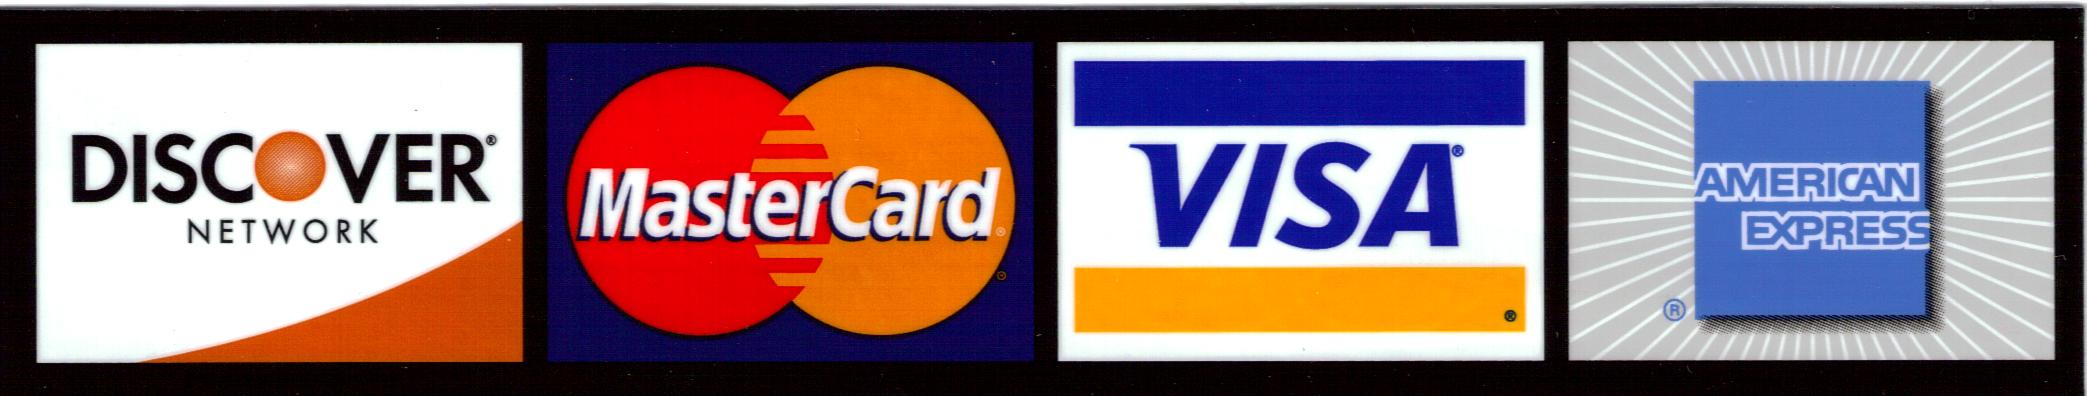 best-credit-cards1.jpg